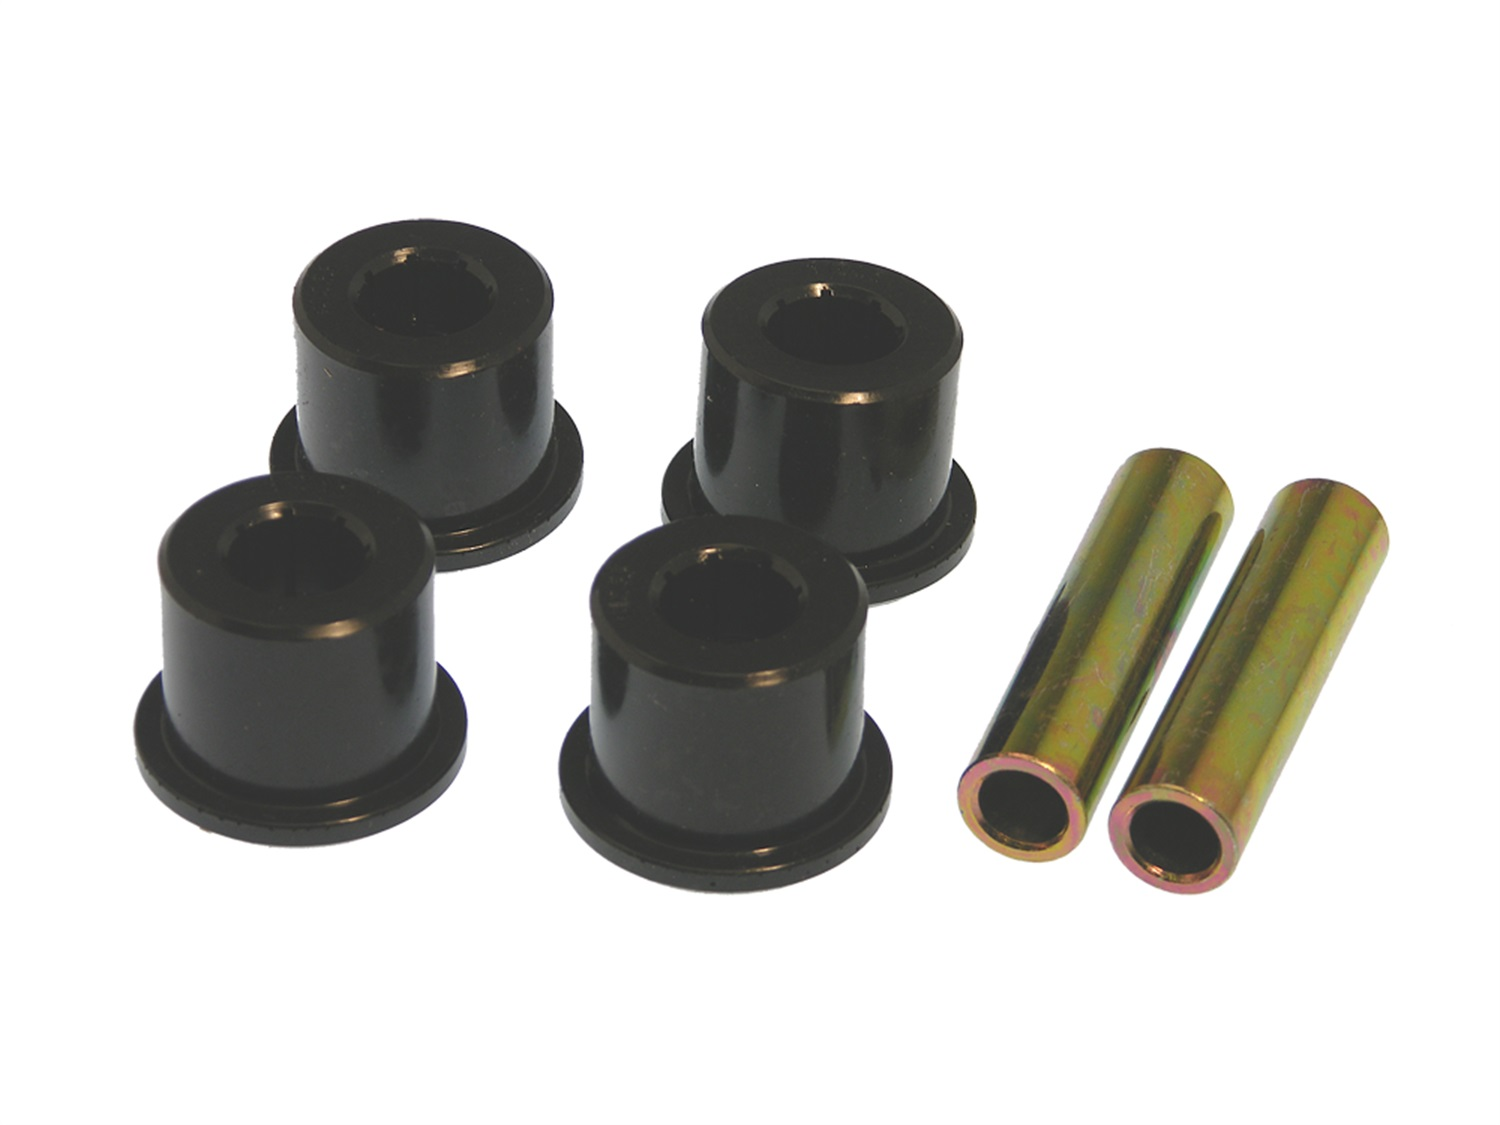 Prothane 19-607-BL Pivot Bushings